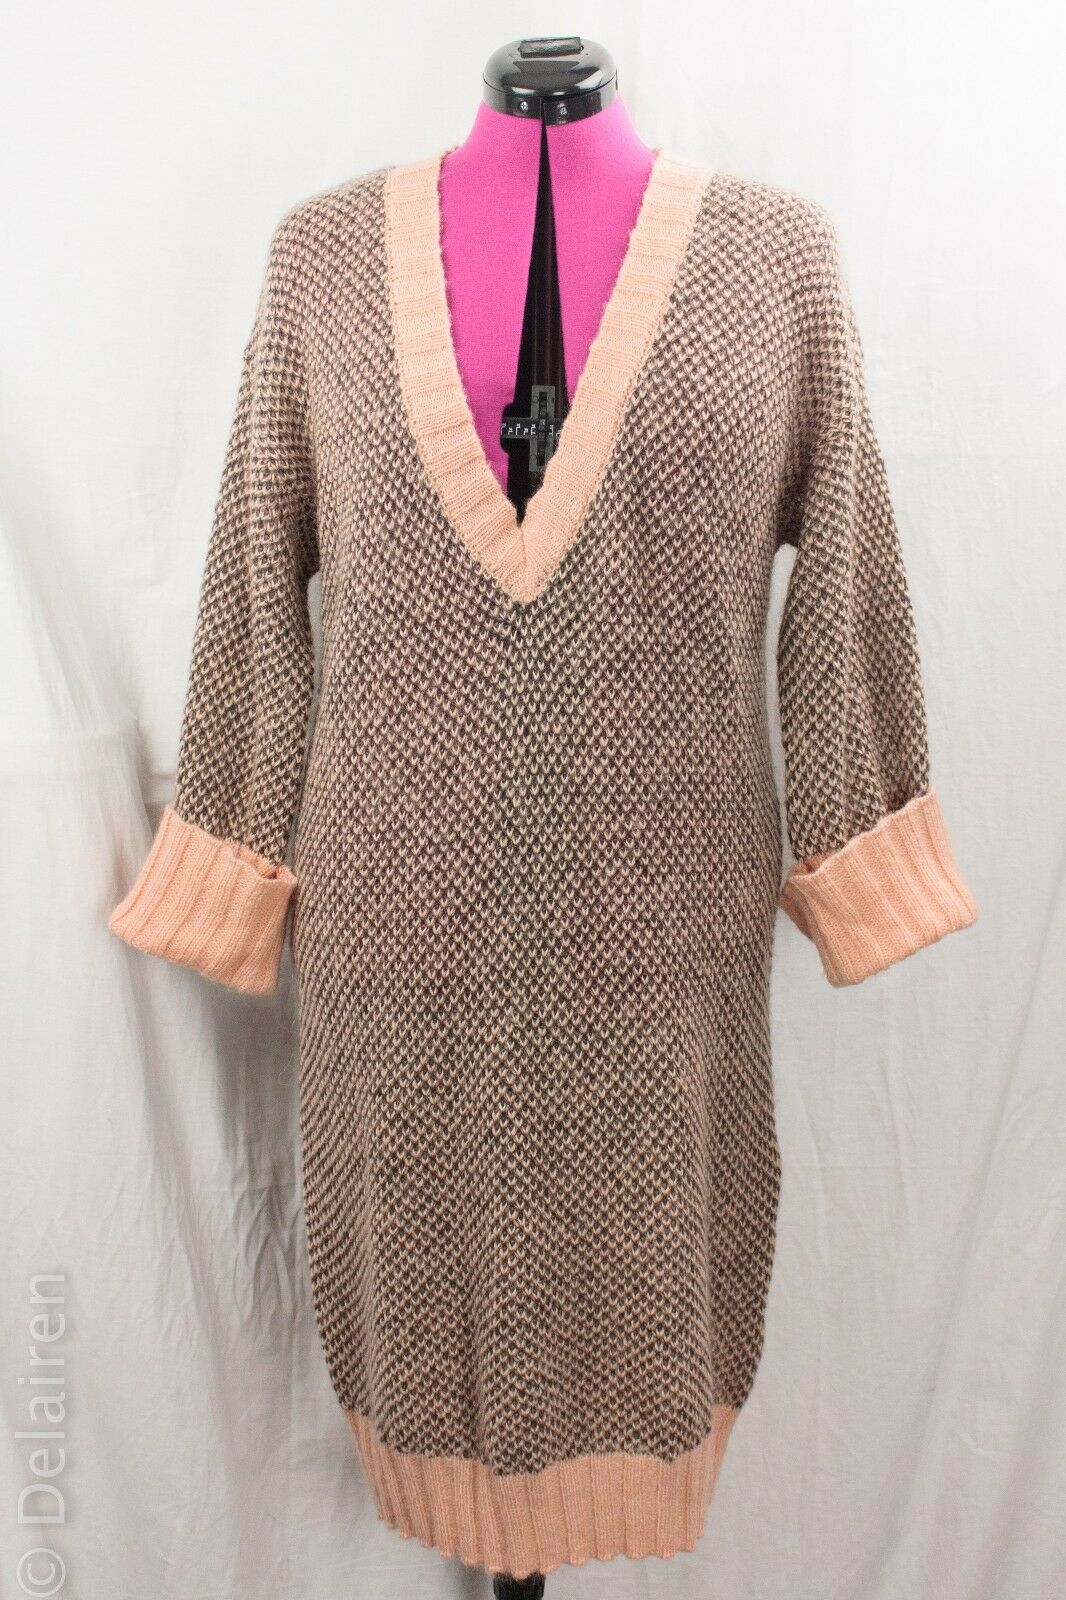 Lagenlook Quirky Birds Eye Mohair Blend Airy Knit Sweater Dress Tunic Sz M OSka